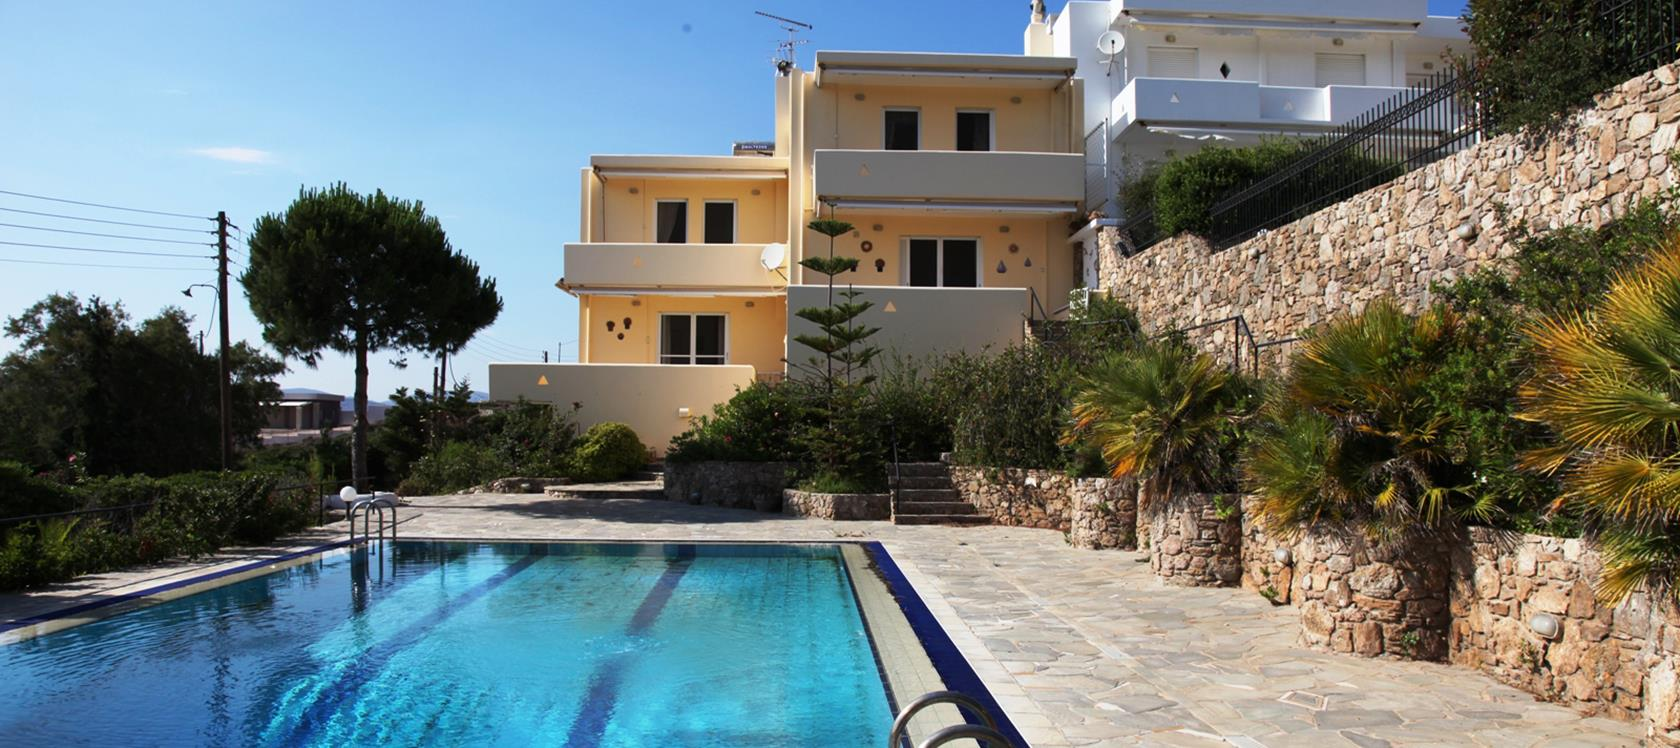 Our Villas in Sounio